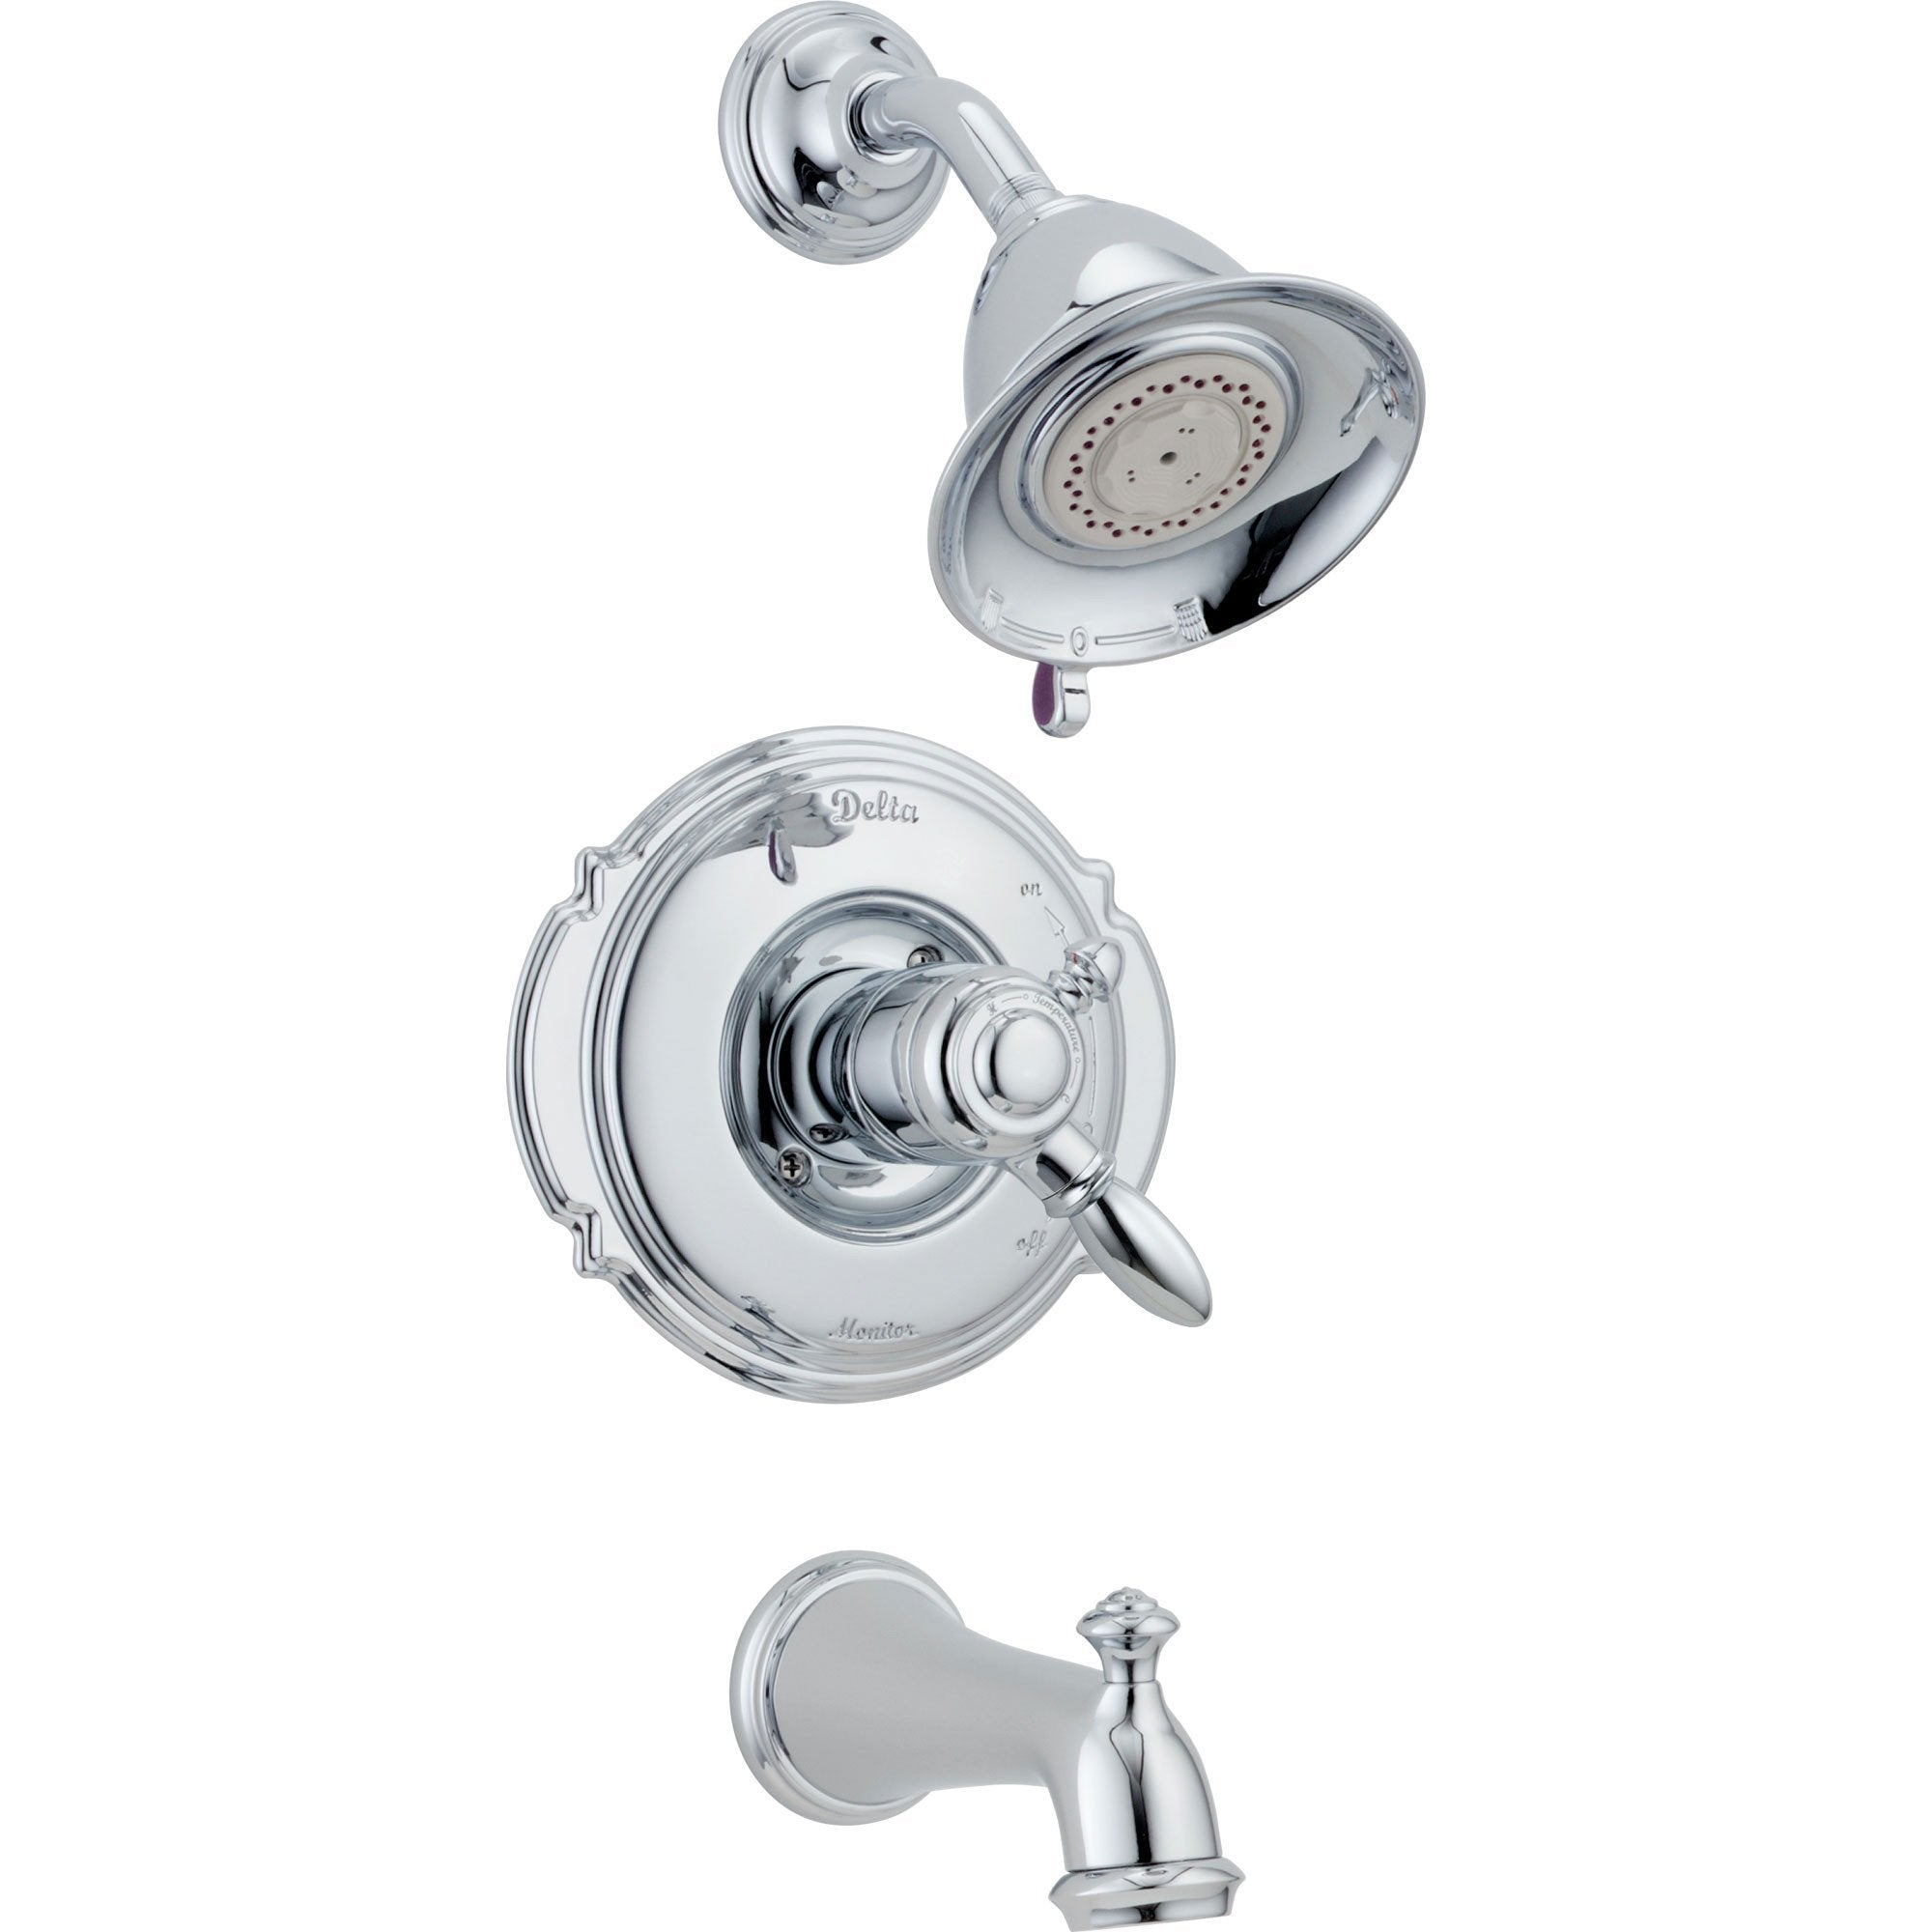 Delta Victorian Chrome Pressure Balanced Tub and Shower Faucet with Valve D386V